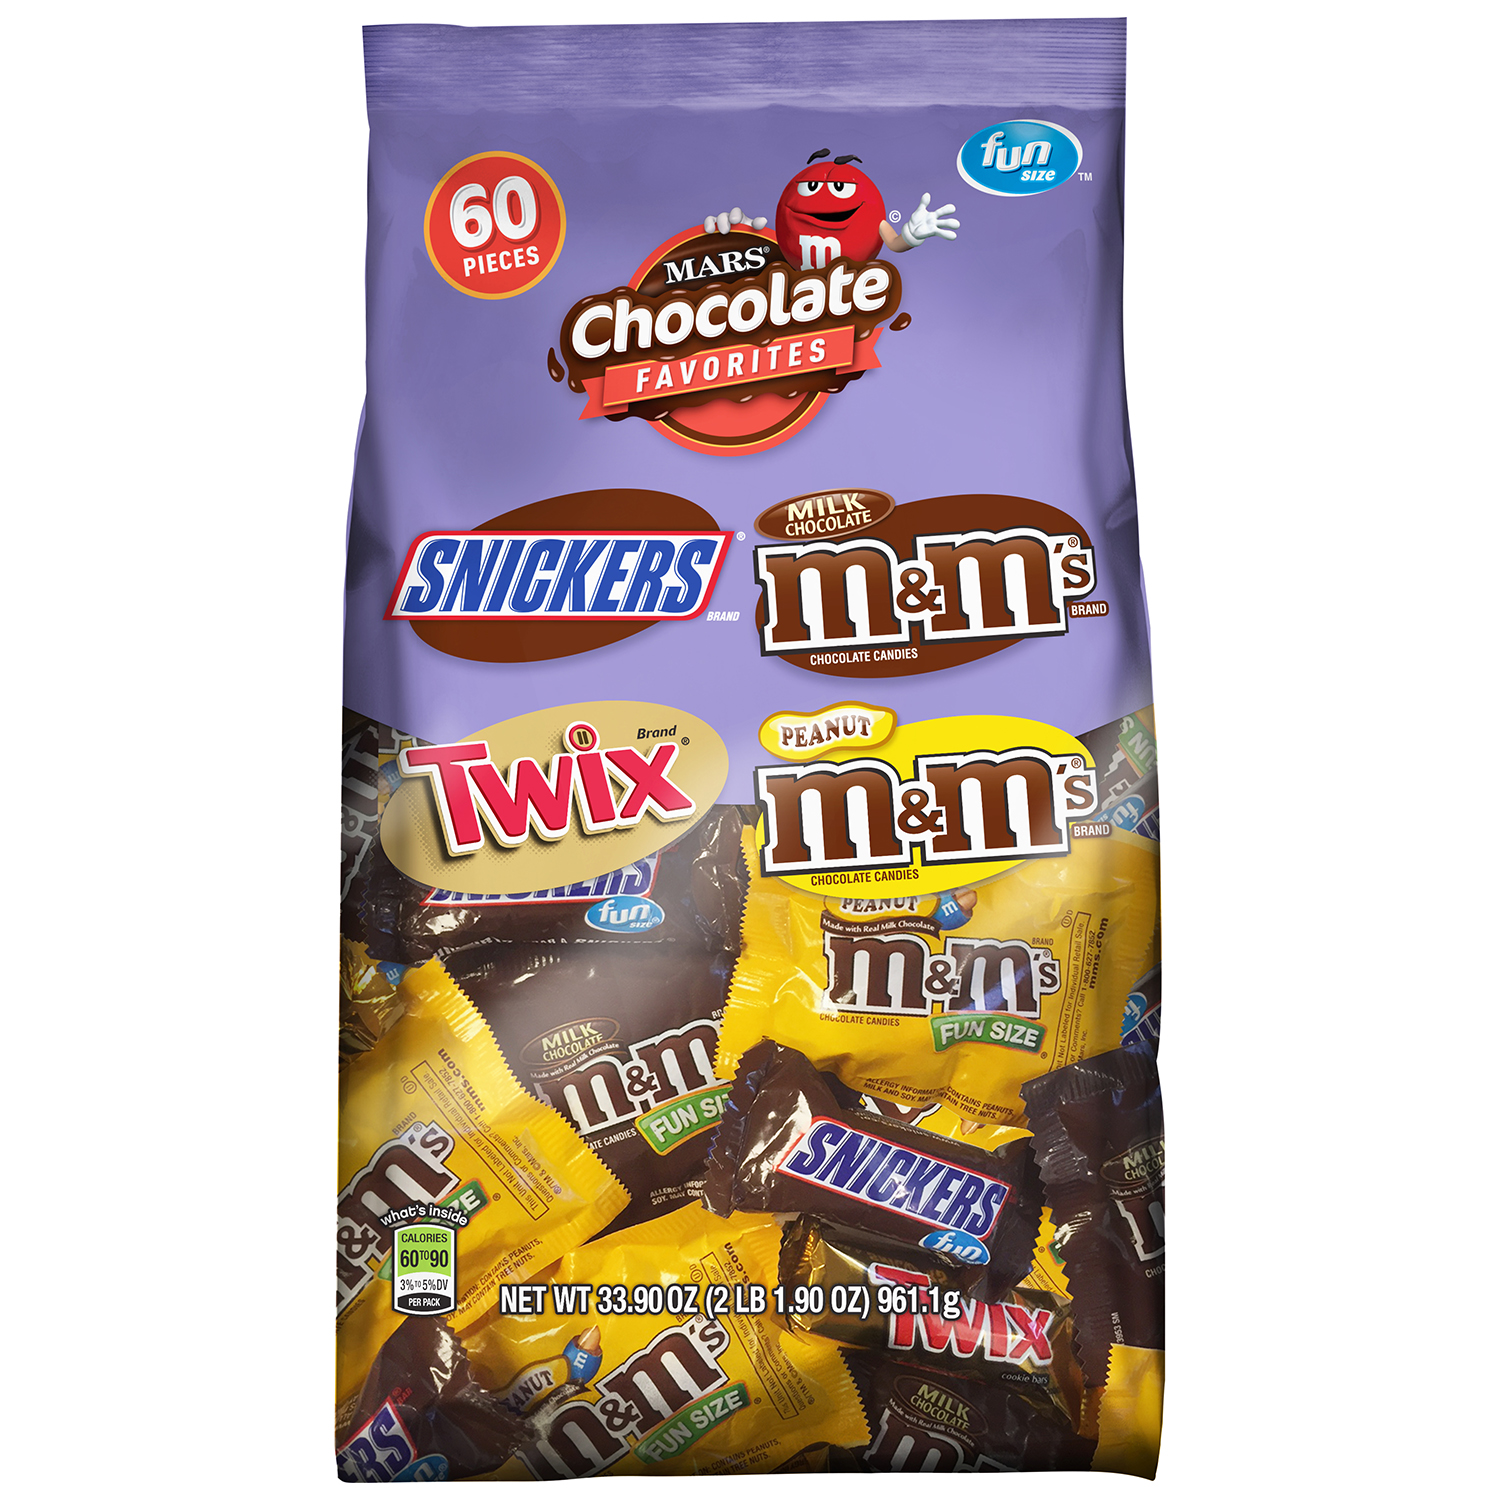 MARS Chocolate Favorites Fun Size Candy Bars Variety Mix Bag (TWIX, SNICKERS, M&M'S Brands), 33.9 oz 60 Pieces